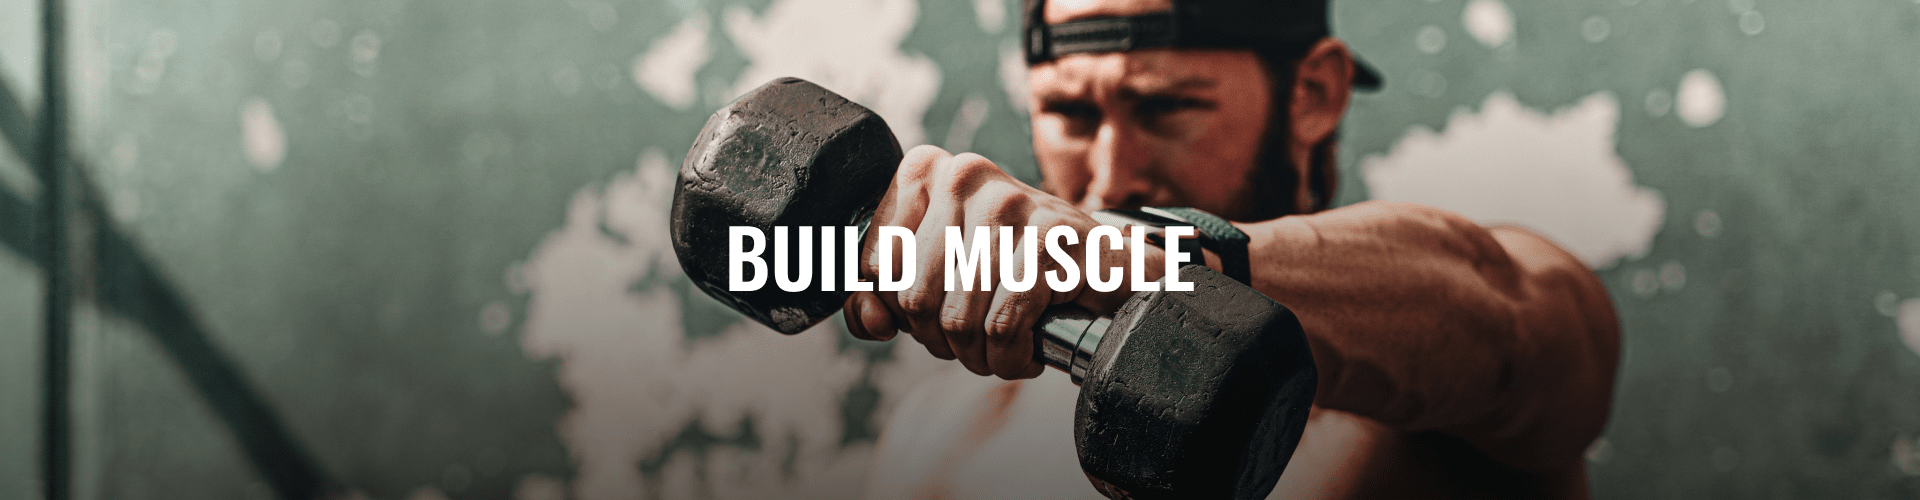 UK_LP-banner_desktop-full_1920x500_BUILD-MUSCLE.png